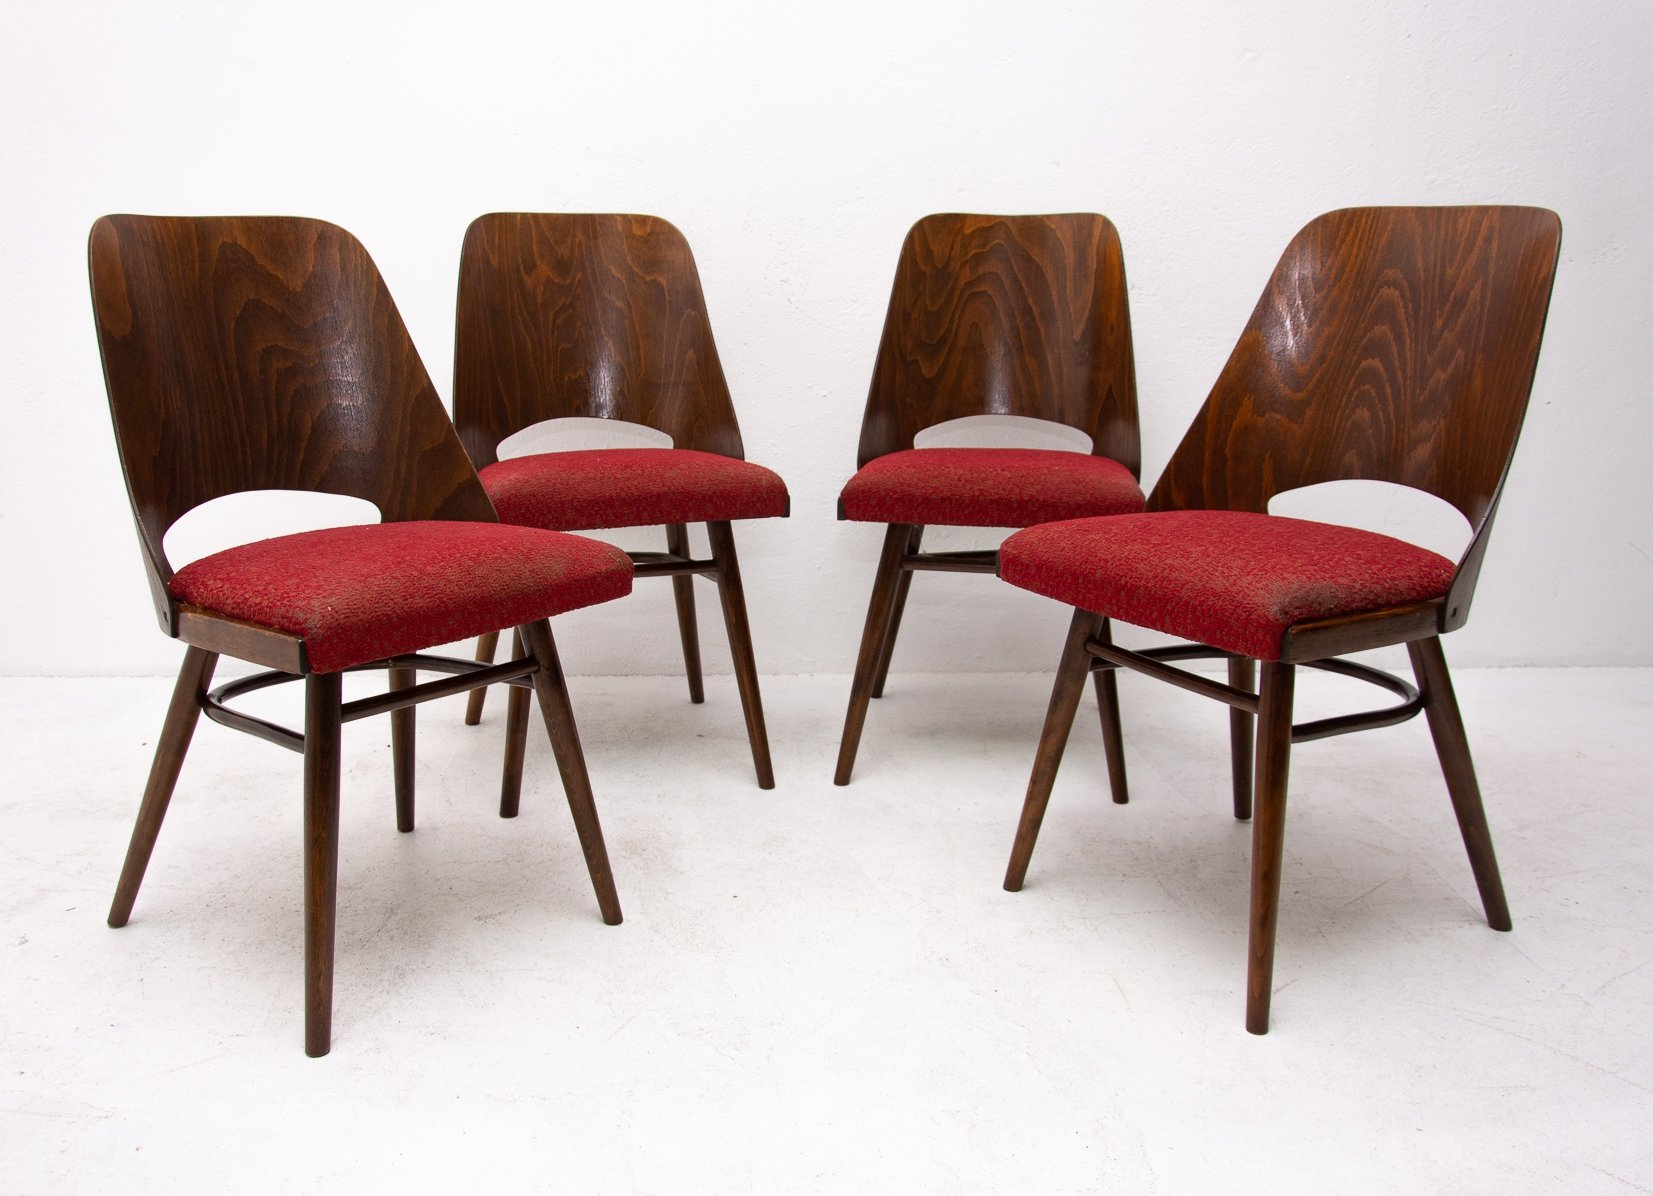 Image of: Set Of 4 Mid Century Bentwood Dining Chairs For Up Zavody 1960s 100304